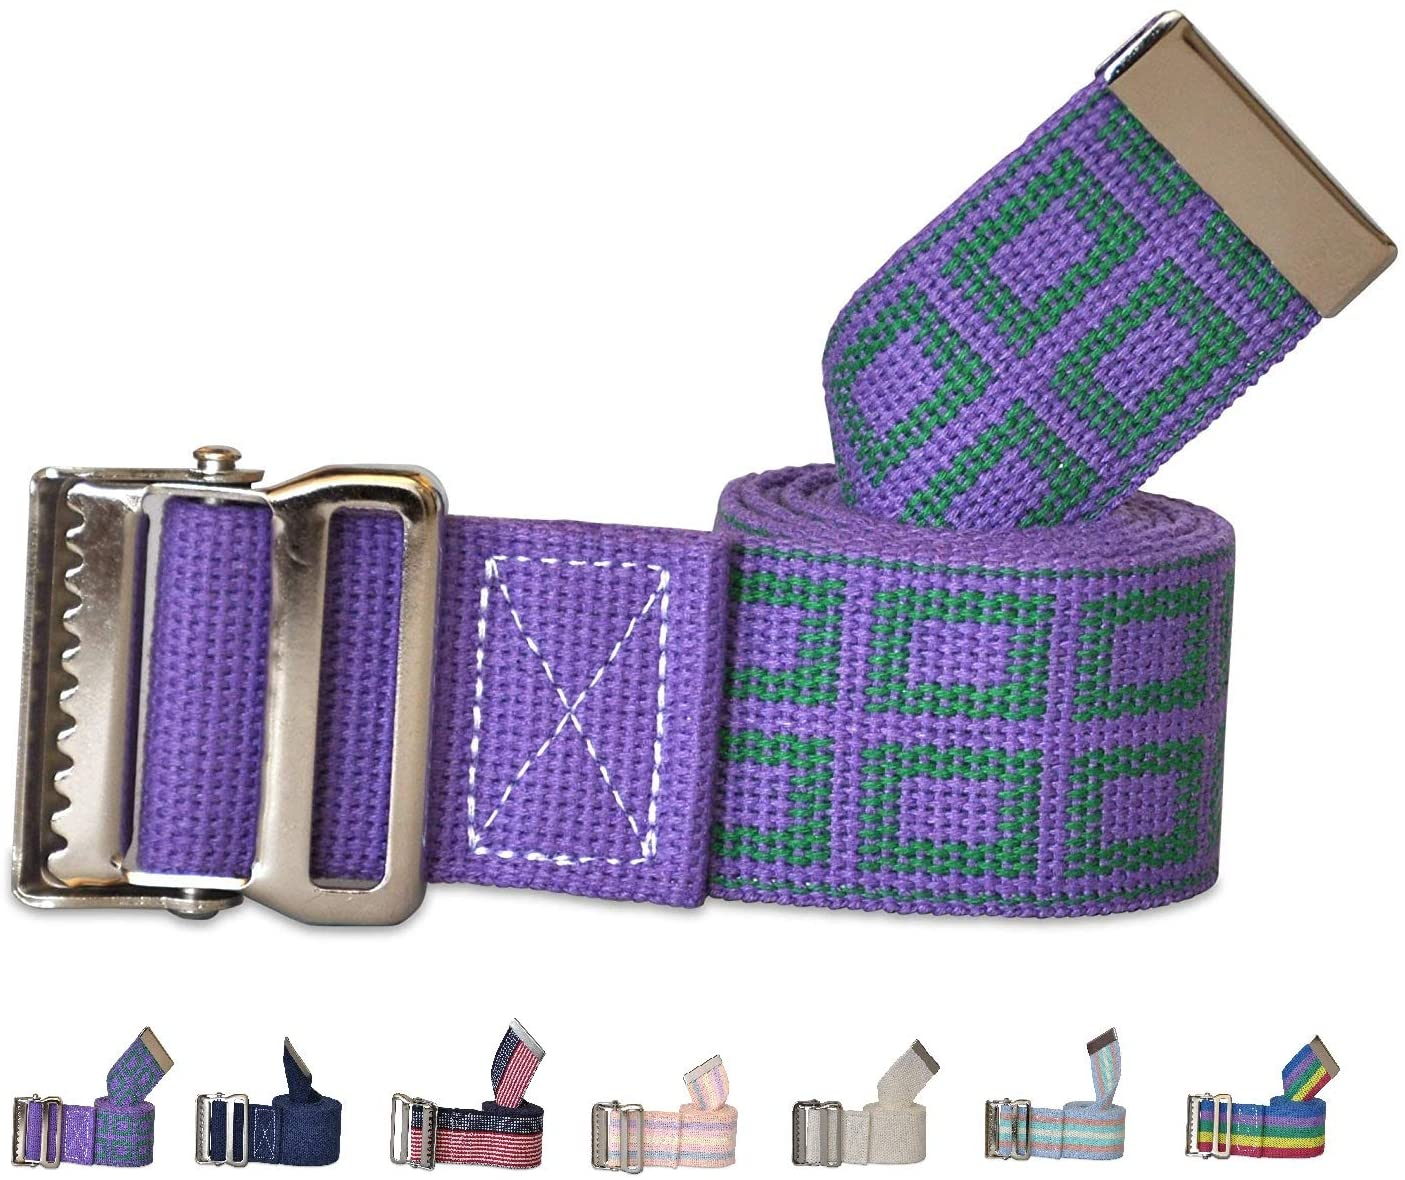 NYOrtho Metal Buckle Gait Belt - Adjustable Machine Washable Strong and Durable Cotton Material Latex Free, Lavender, 60